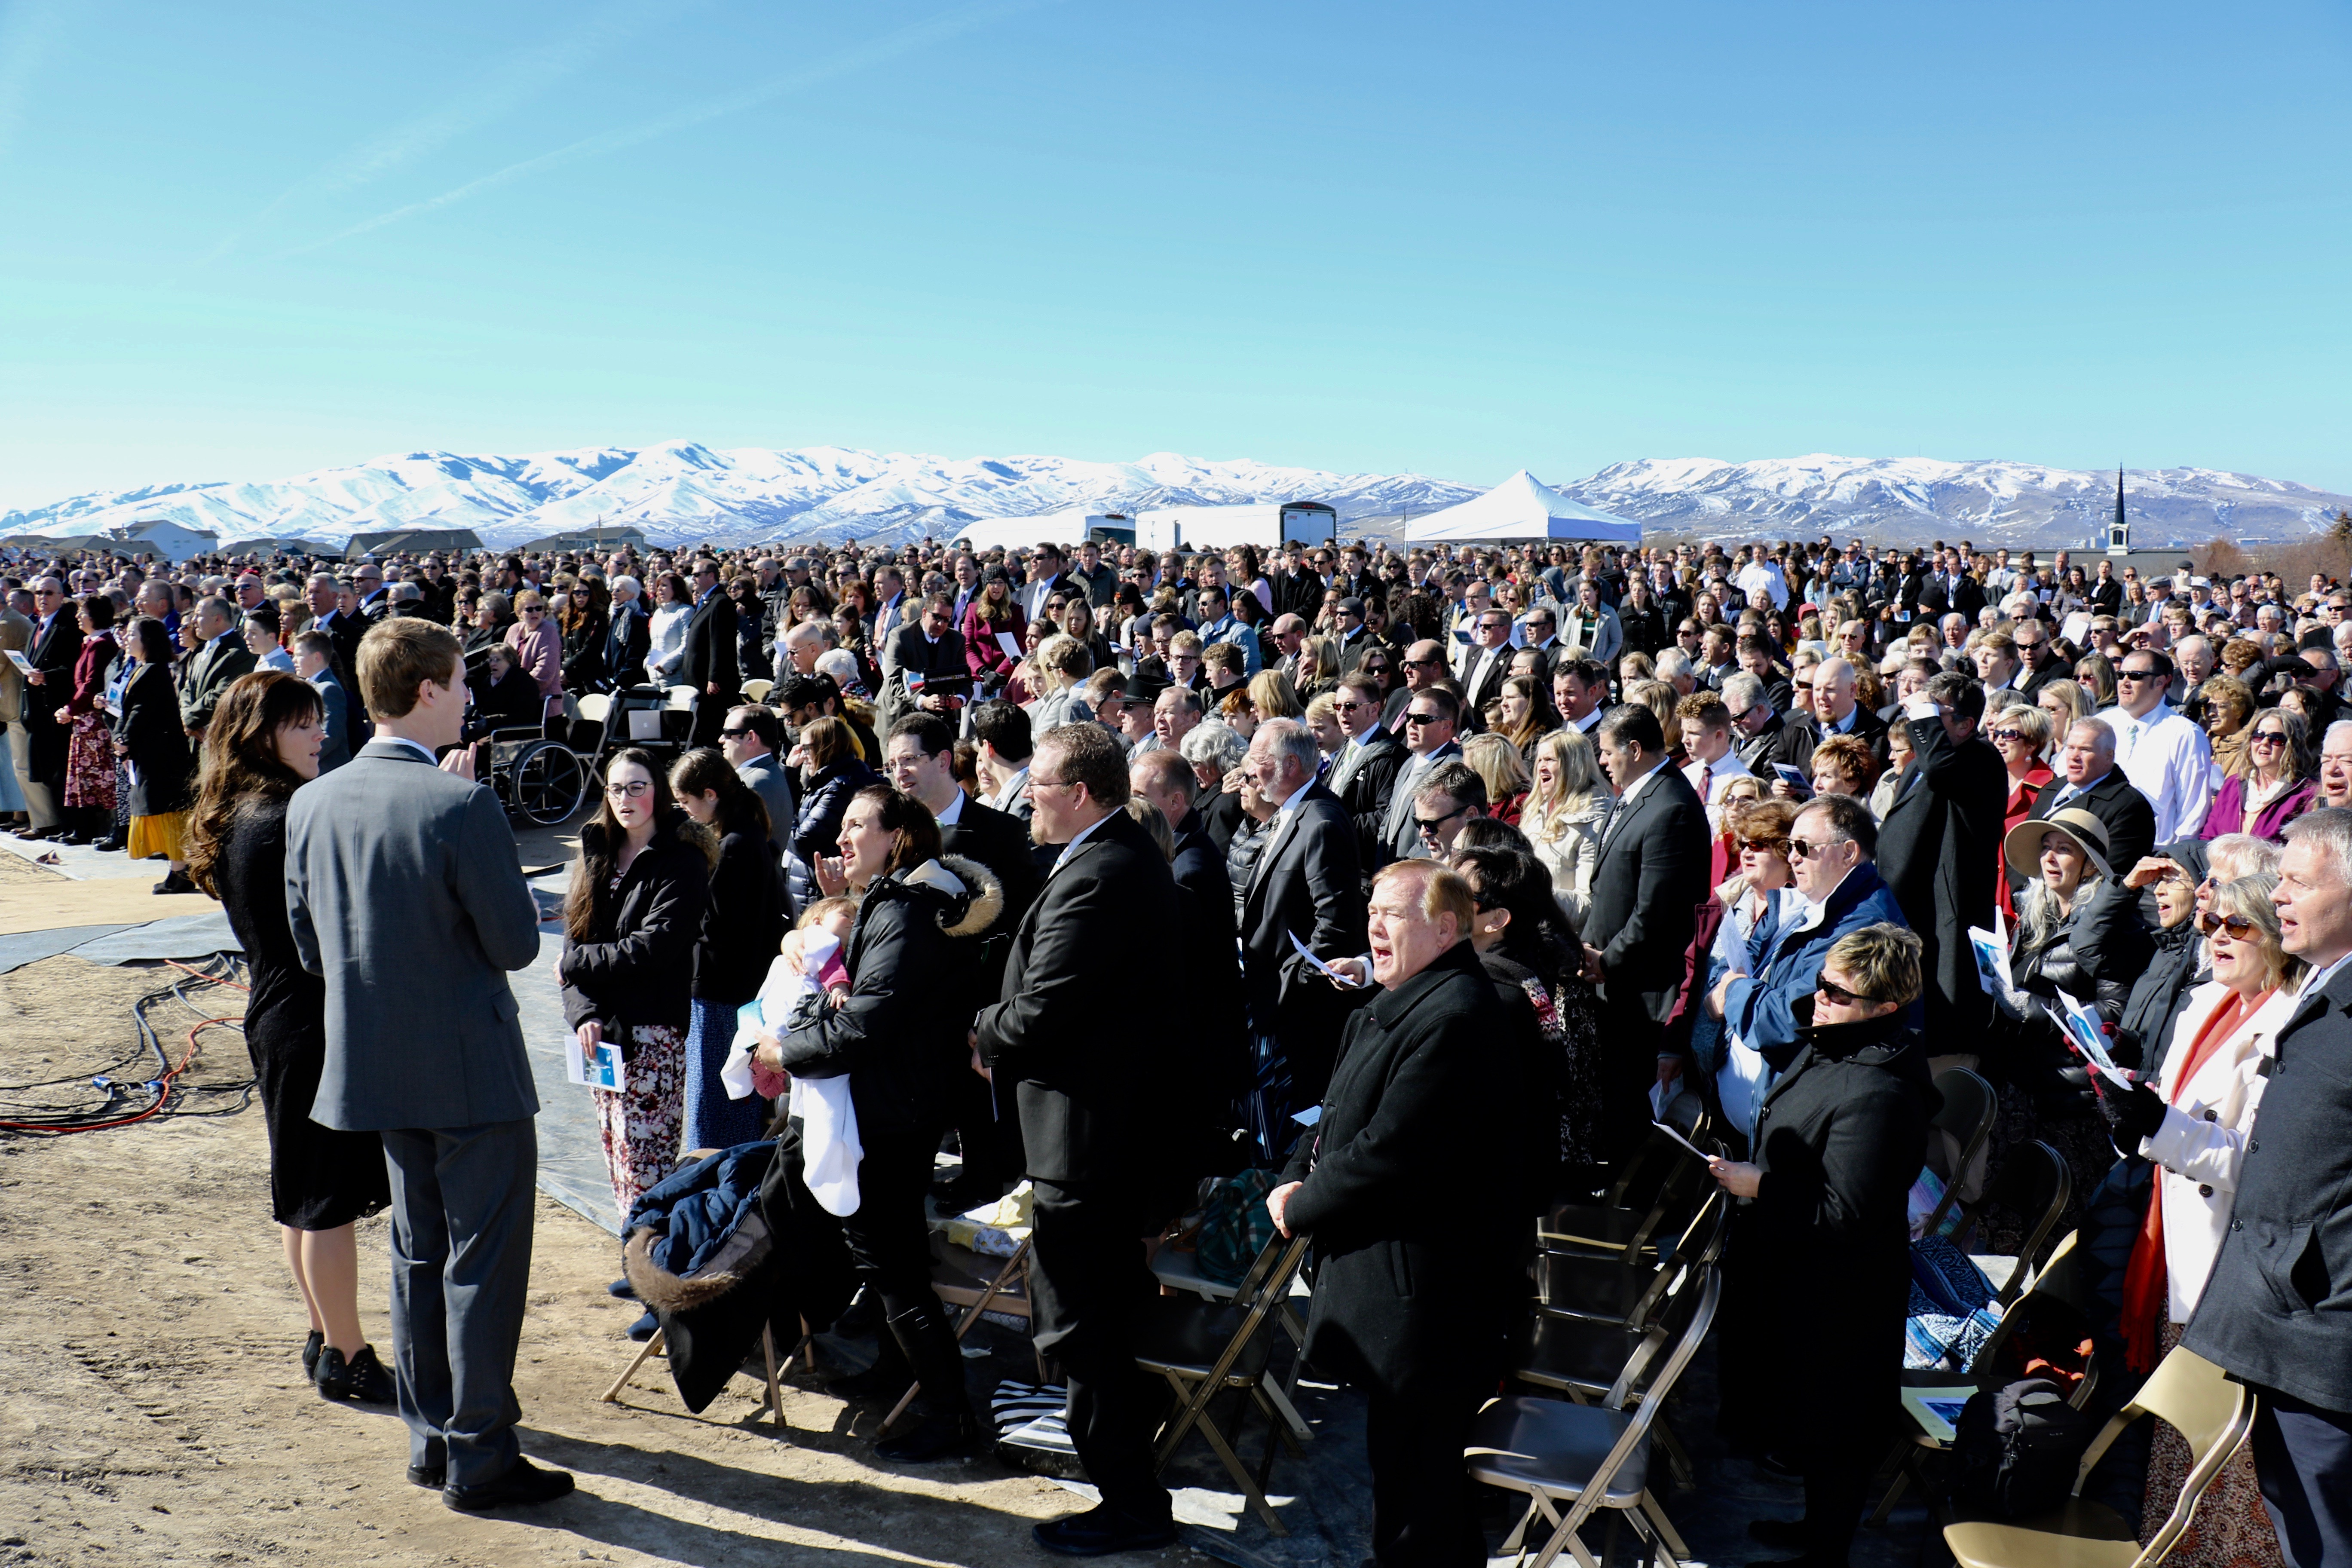 Thousands gathered under brisk, clear skies on March 16, 2019, for the groundbreaking service of the Pocatello Idaho Temple.